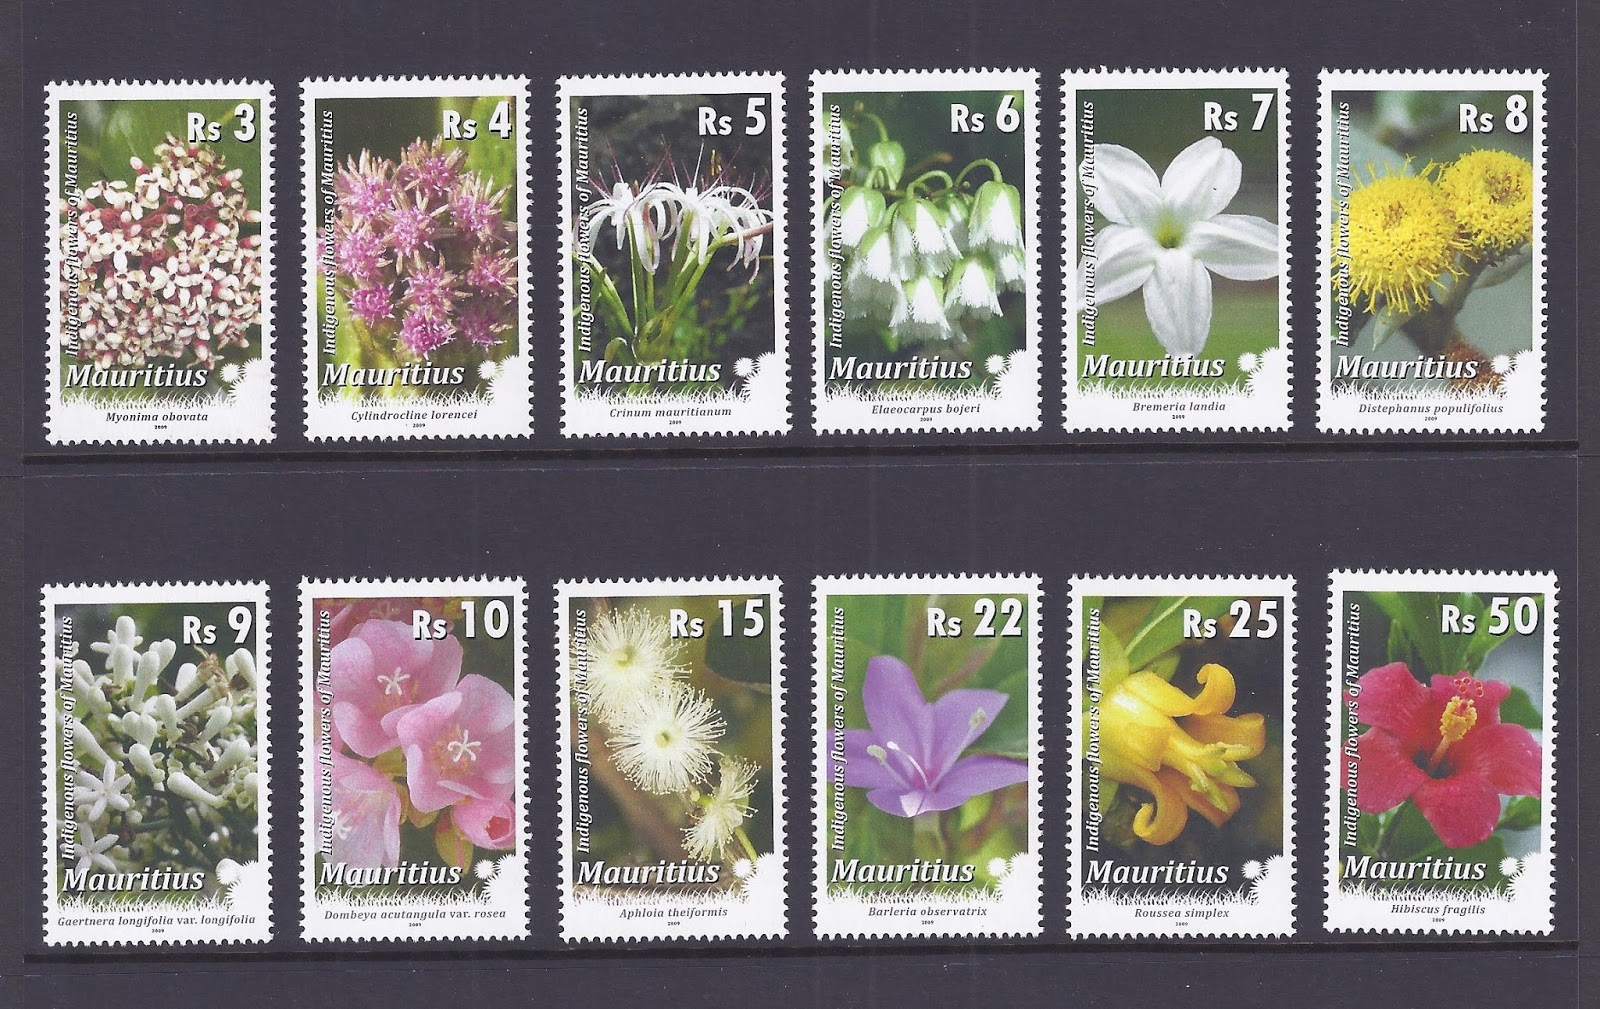 Mauritian philatelic blog indigenous flowers of mauritius the small size and isolation of mauritius have enabled its biodiversity to develop unique characteristics and a high level of endemism through thousands of izmirmasajfo